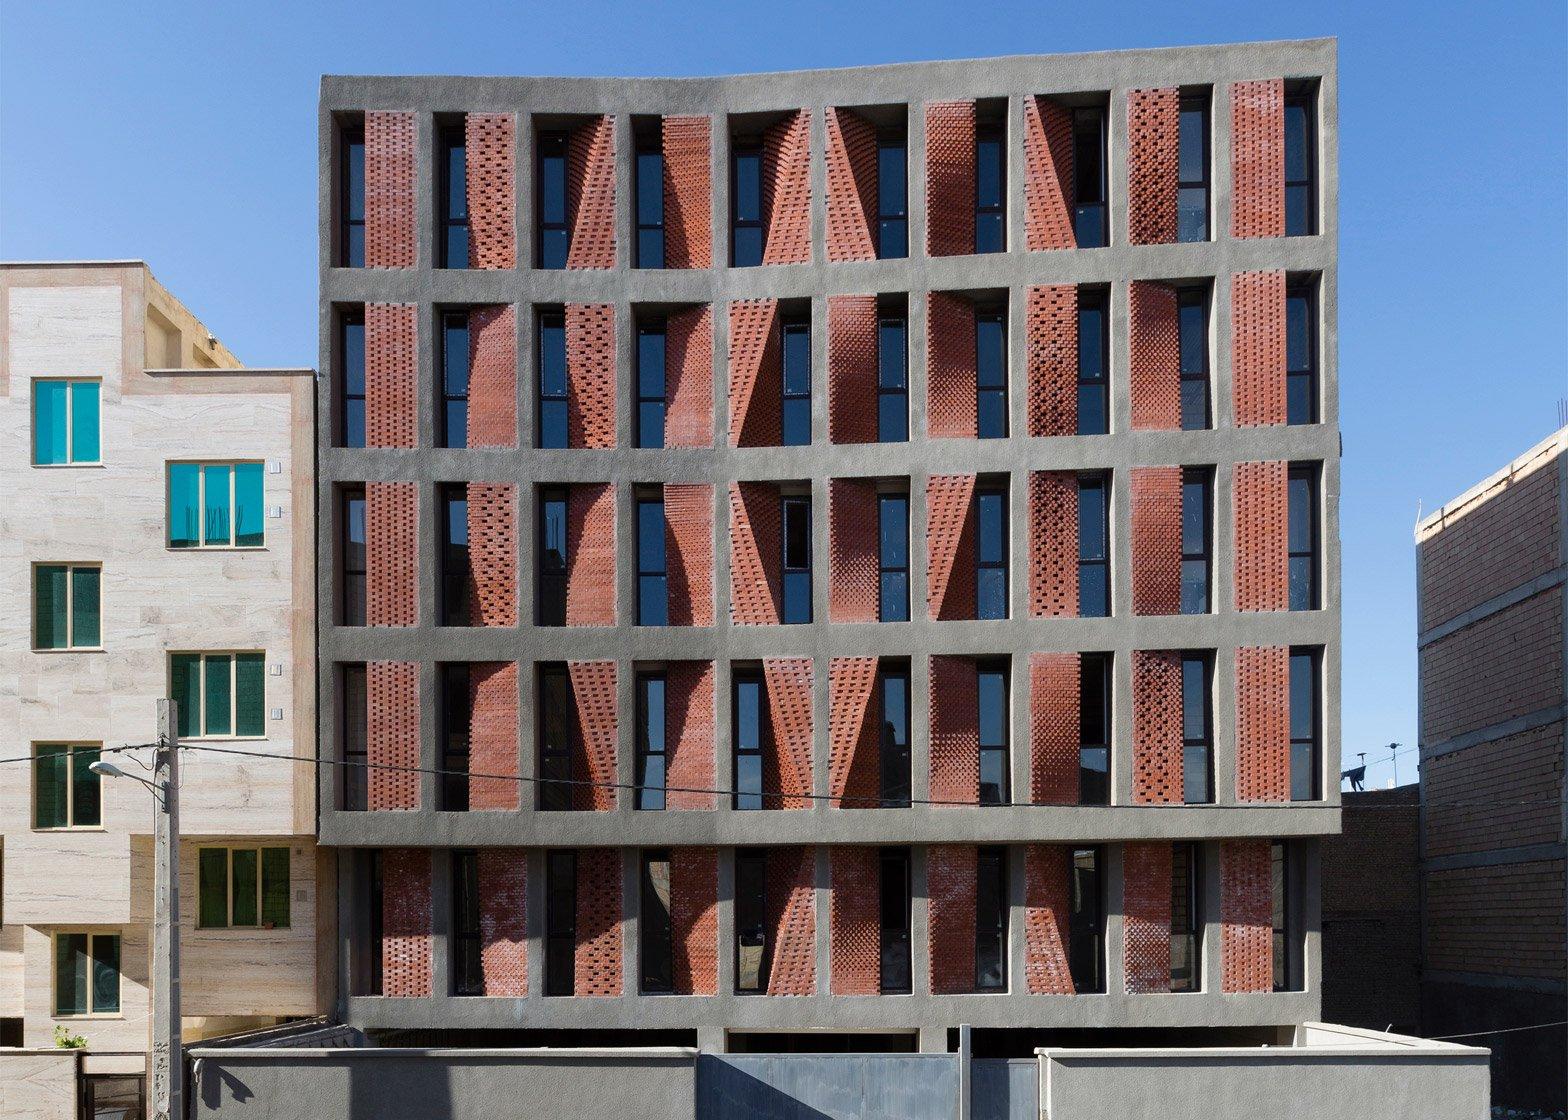 Kahrizak housing block in Tehran by CAAT Studio